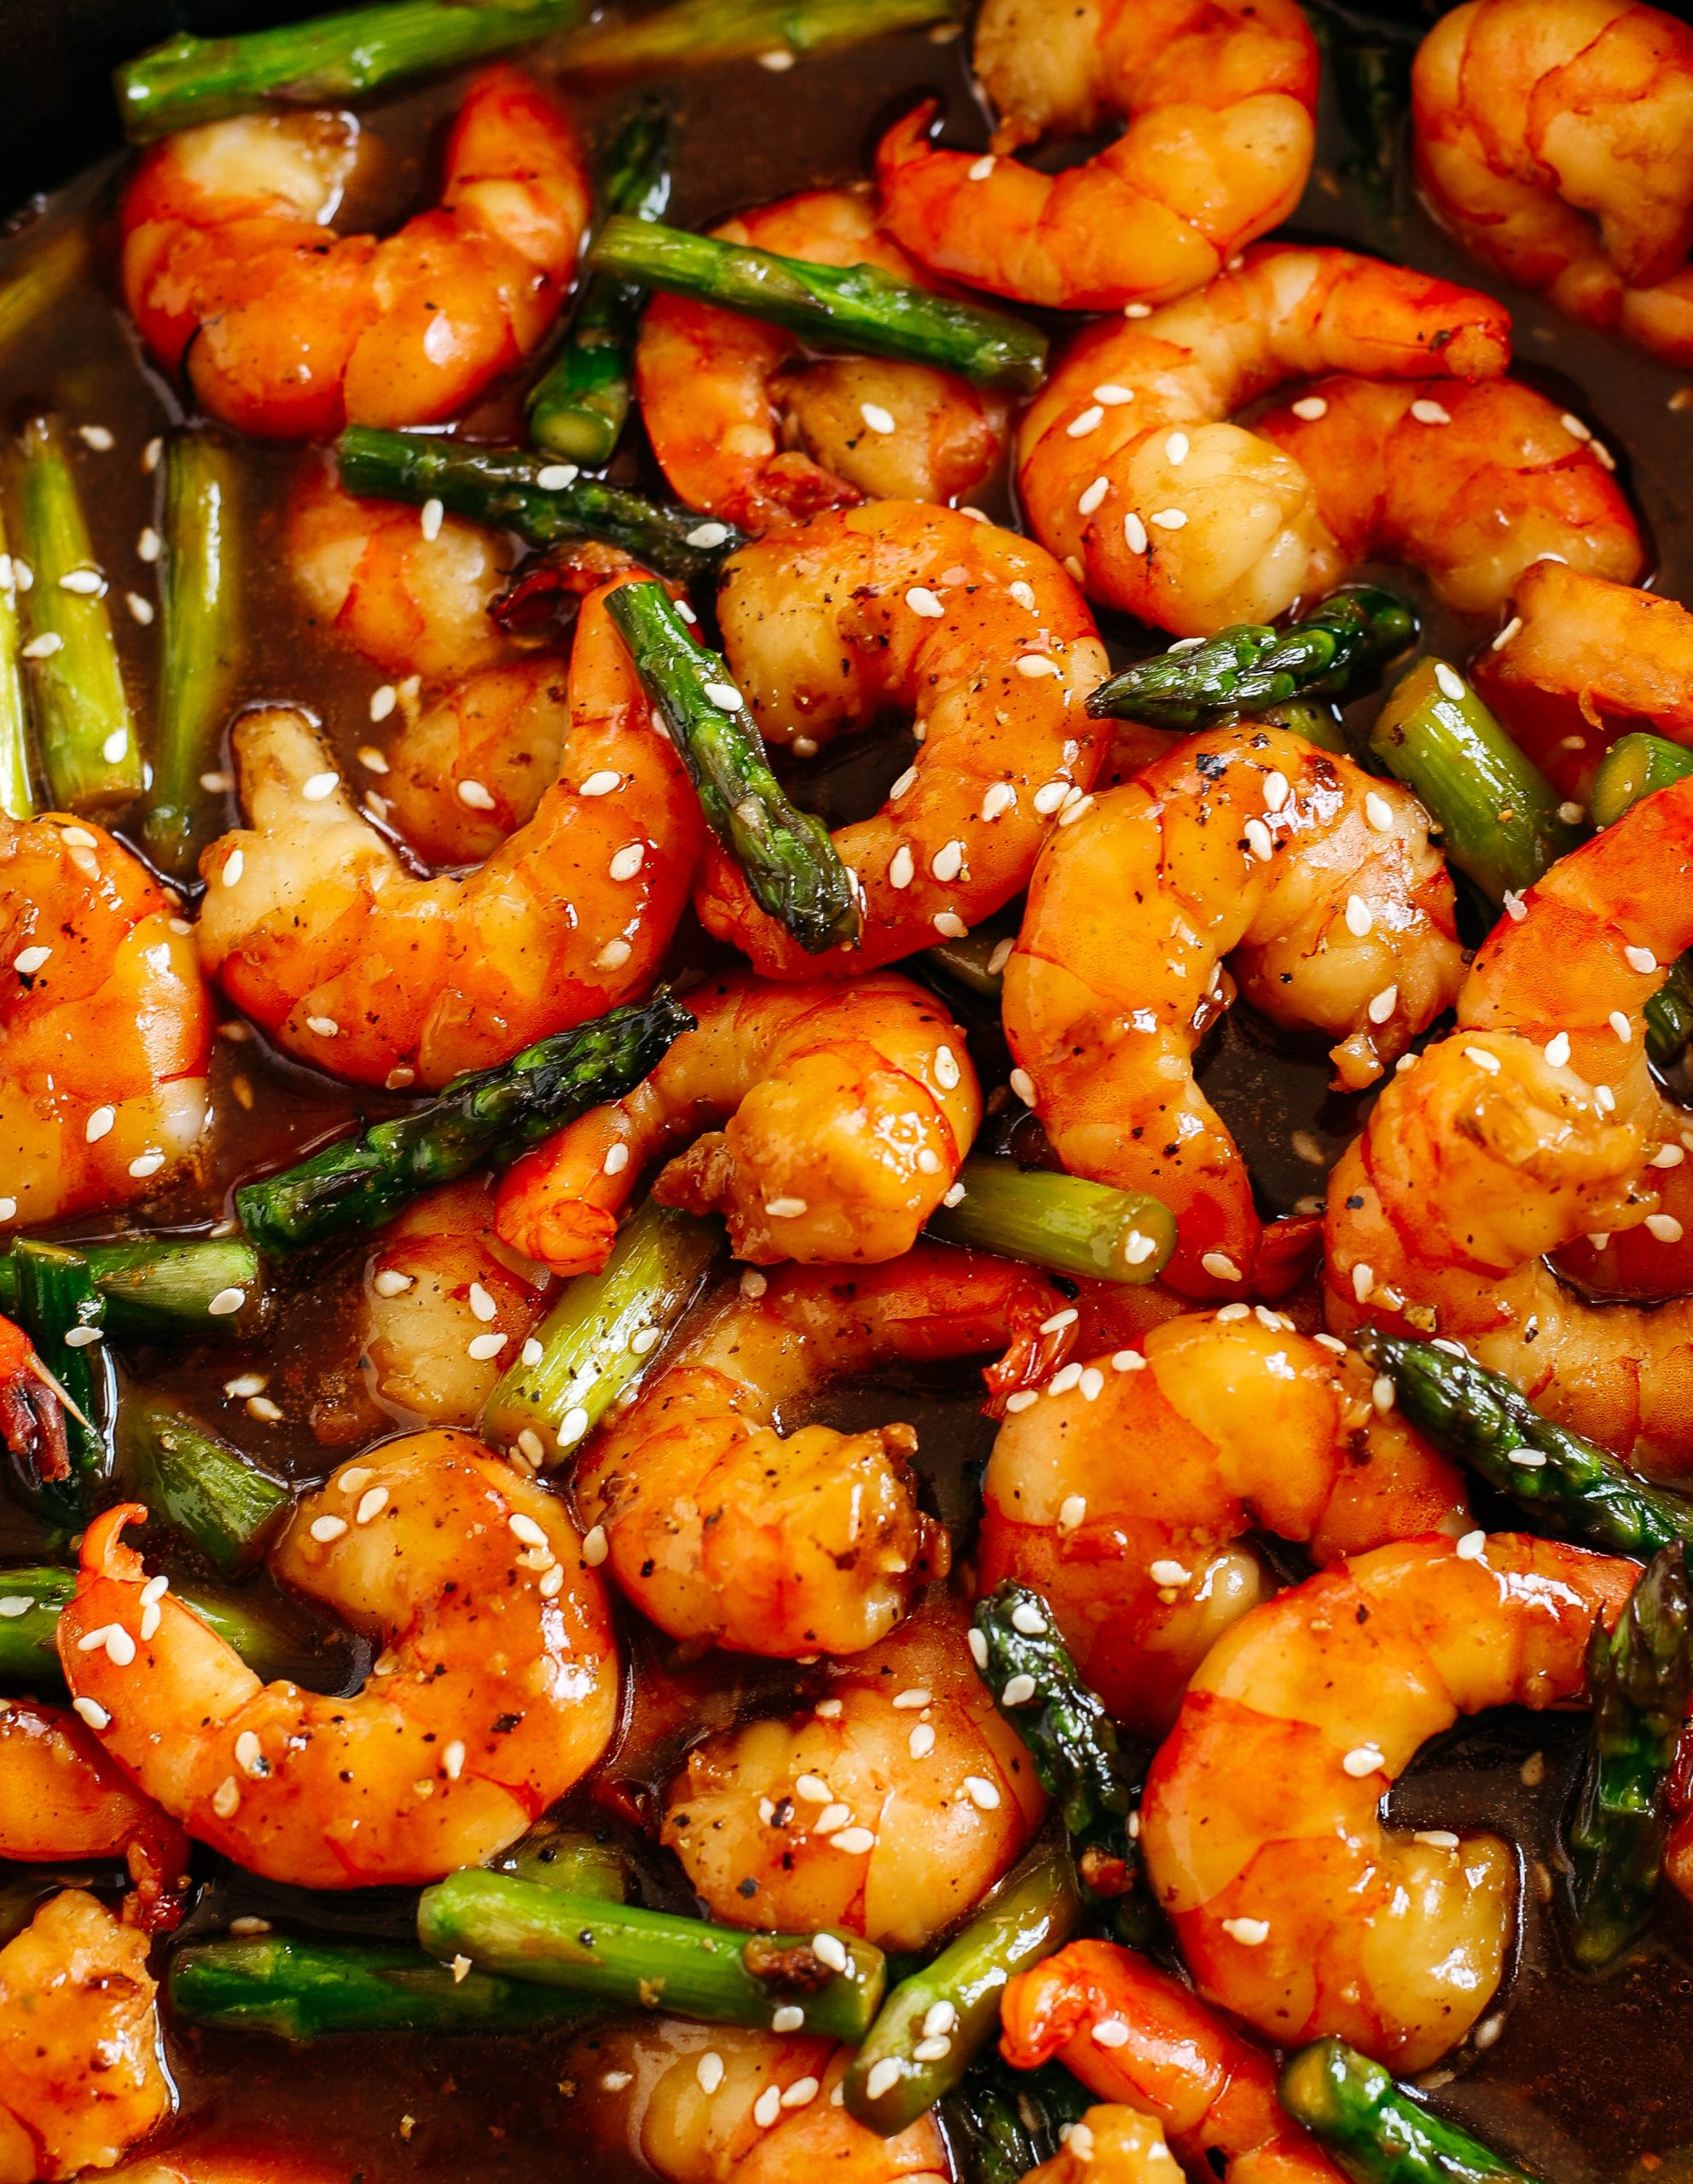 This EASY 15 minute Honey Garlic Shrimp Stir Fry is the perfect weeknight meal that is healthy, flavorful and easily made all in one pan!